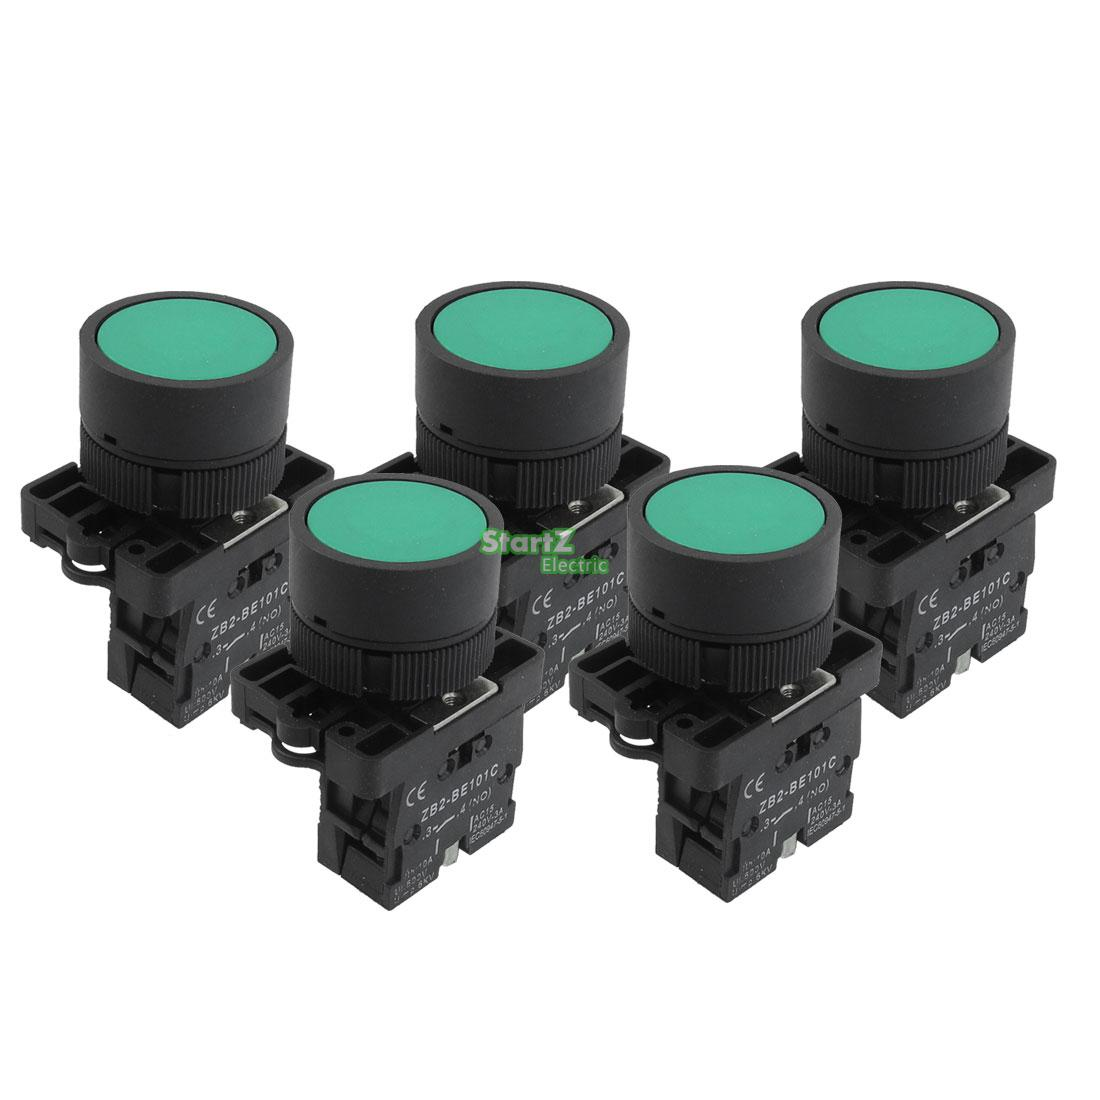 5 X 22mm 1 No N O Green Sign Momentary Push Button Switch 600v For Wiring Toggle Diagrams Kcd1 10a Zb2 Ea31